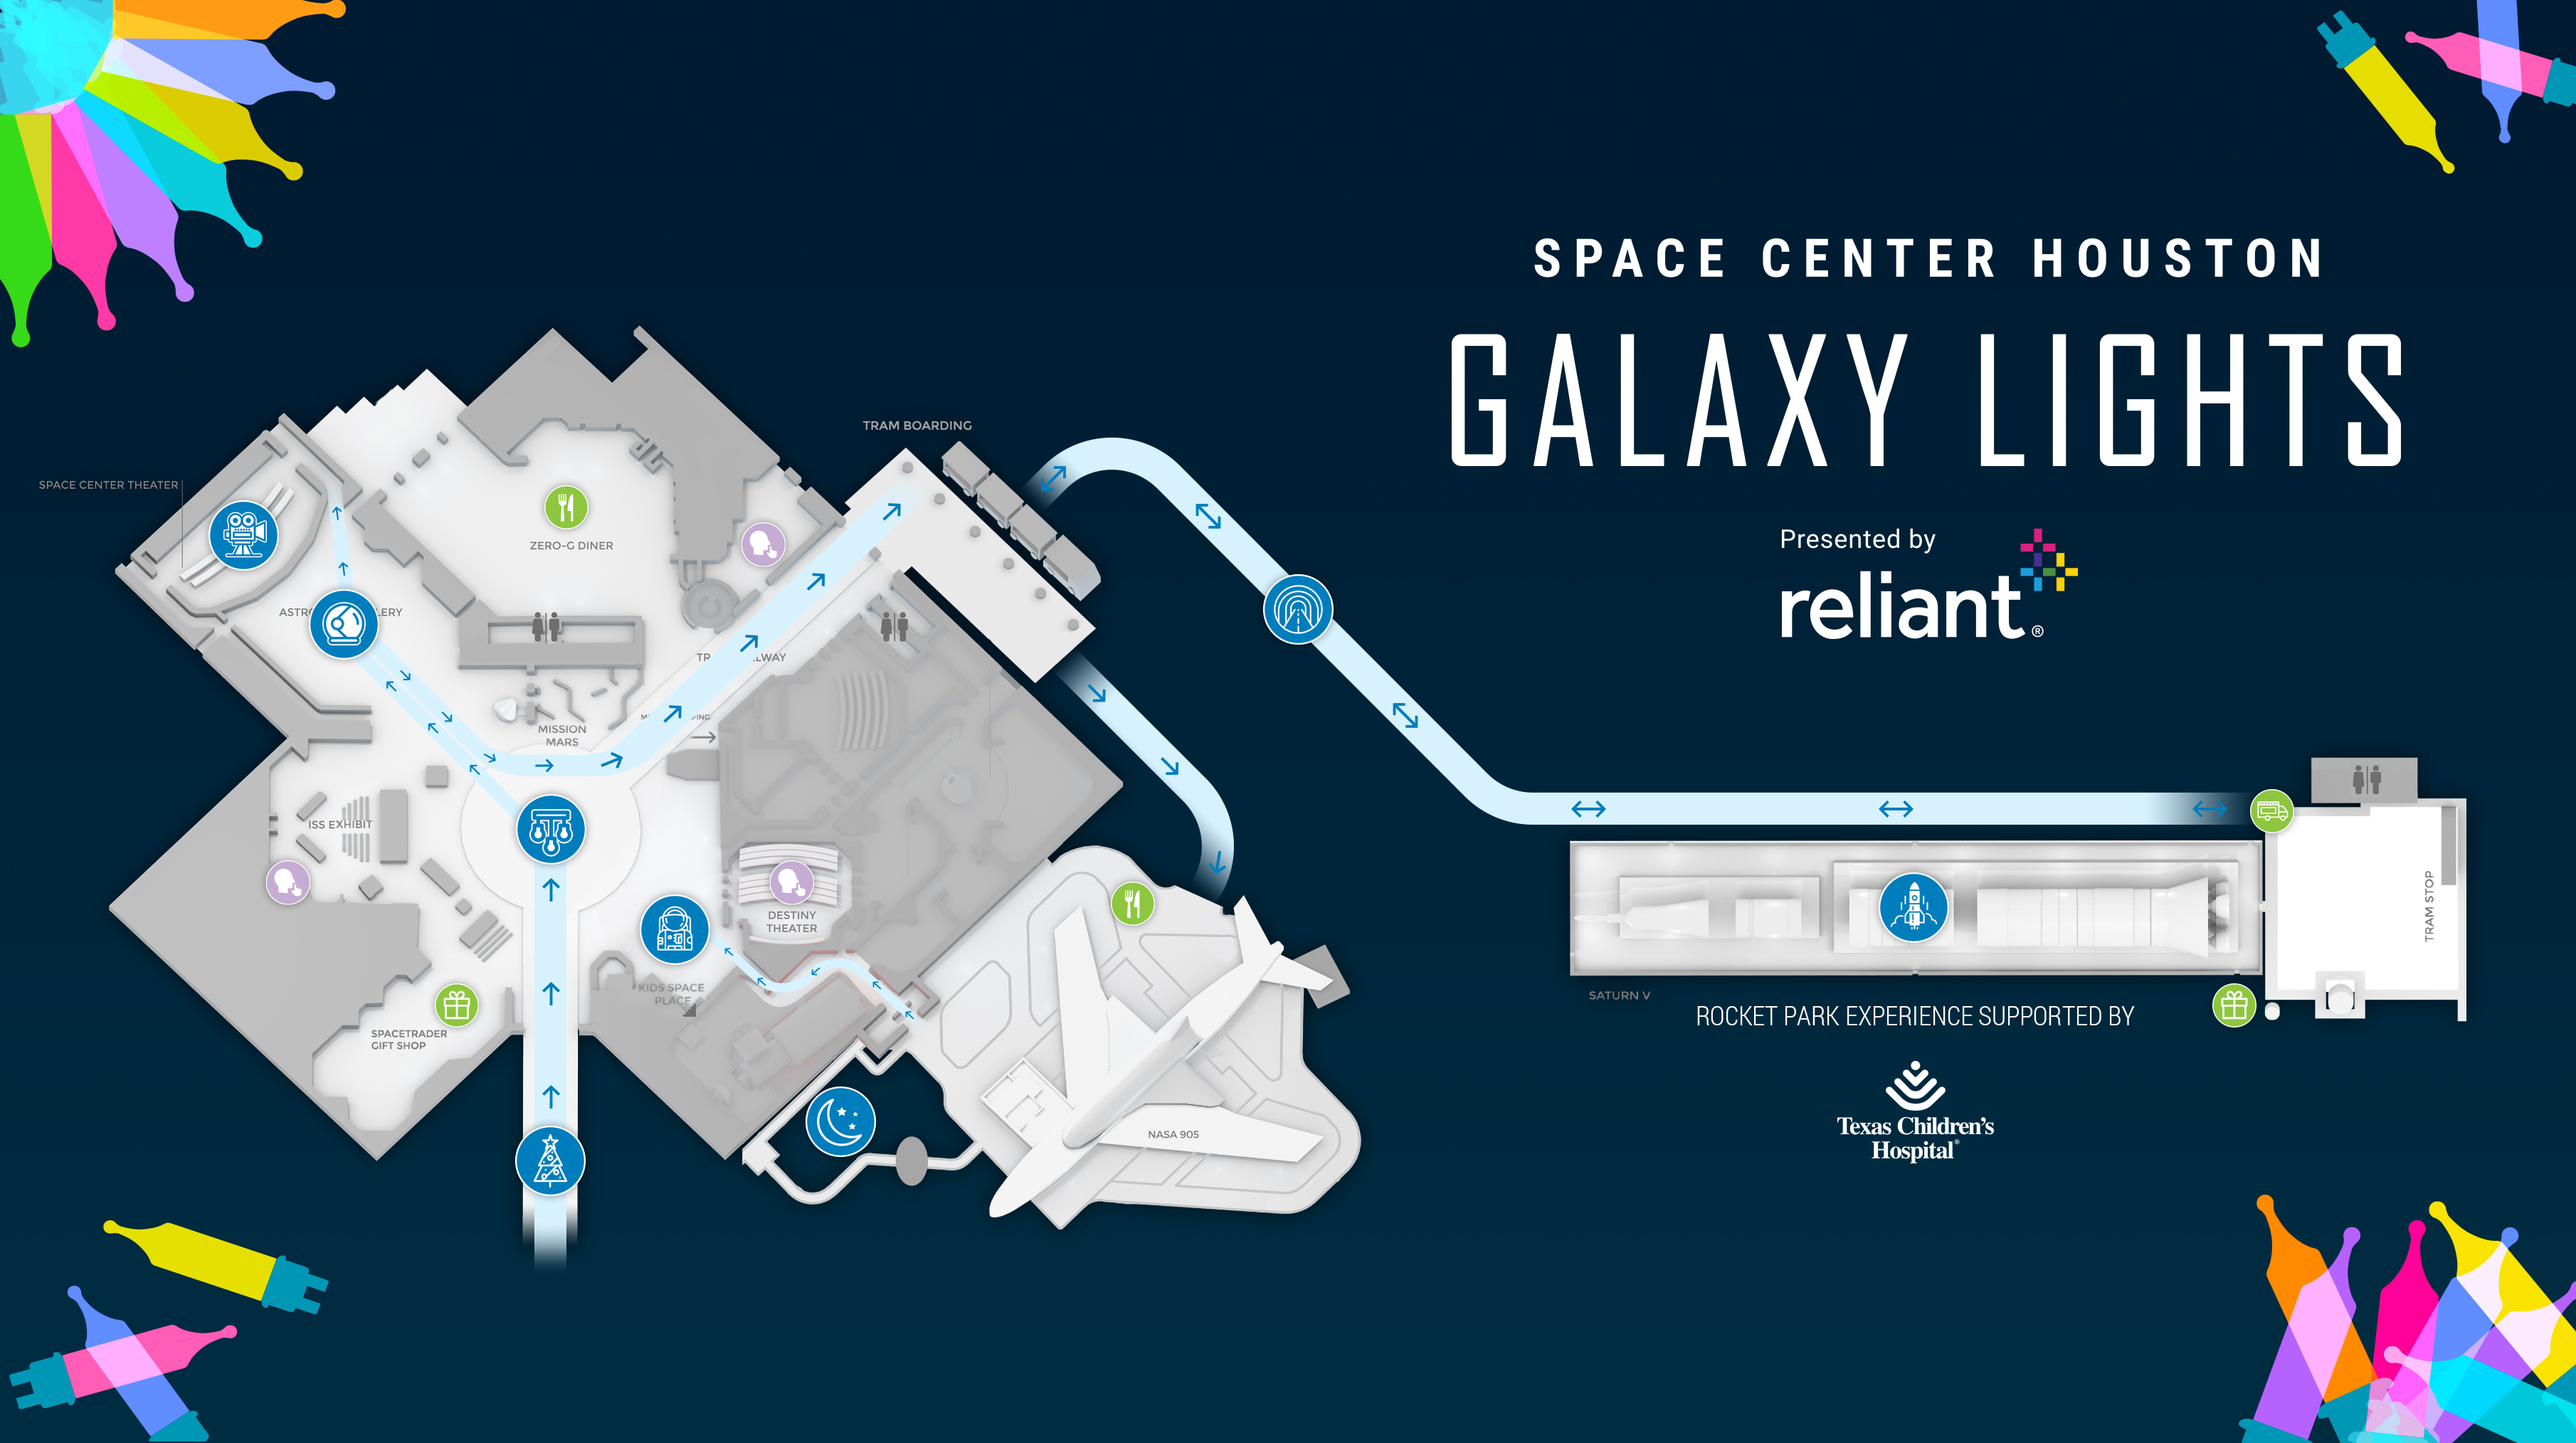 Galaxy Lights featuring reduced stimulation - Space Center ... on martin map, electric map, ubrs map, explorer map, rock map, caribbean map, pop map, man map, standard map, marshall map, stevens map, metal map, usa map, port map, string map, satellite map, paul map, st map, gibson map,